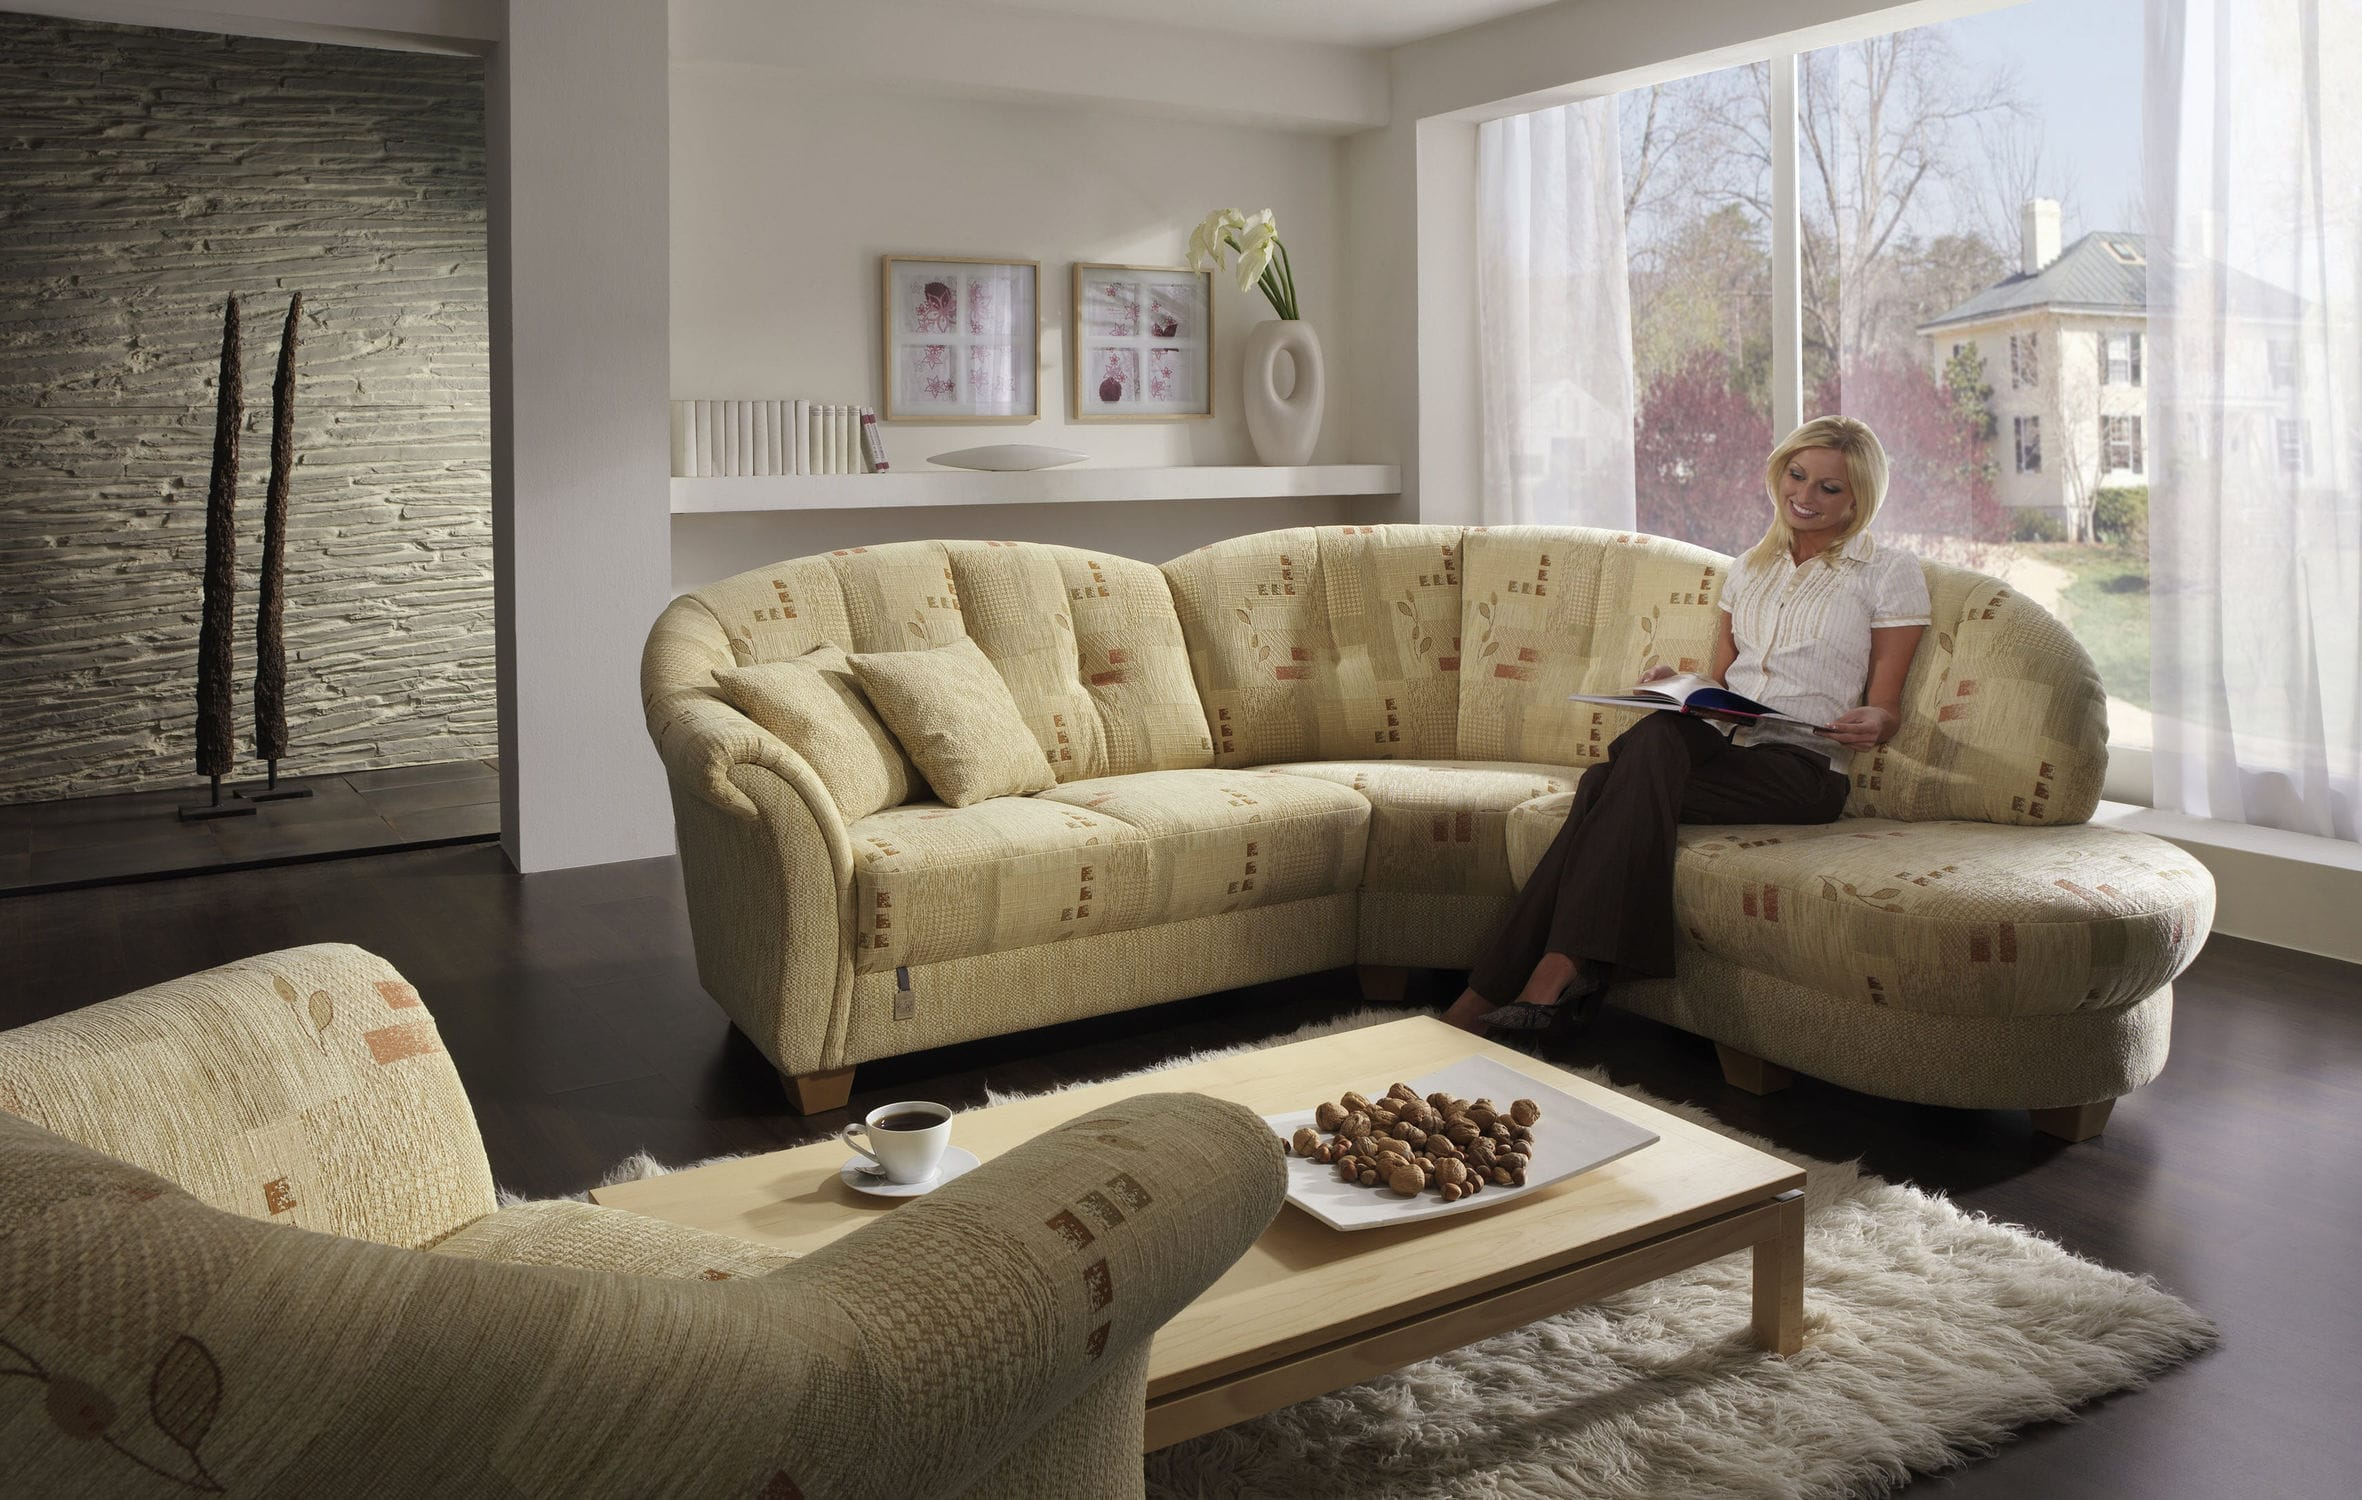 Modular sofa traditional leather fabric CHALET SIGMA S L